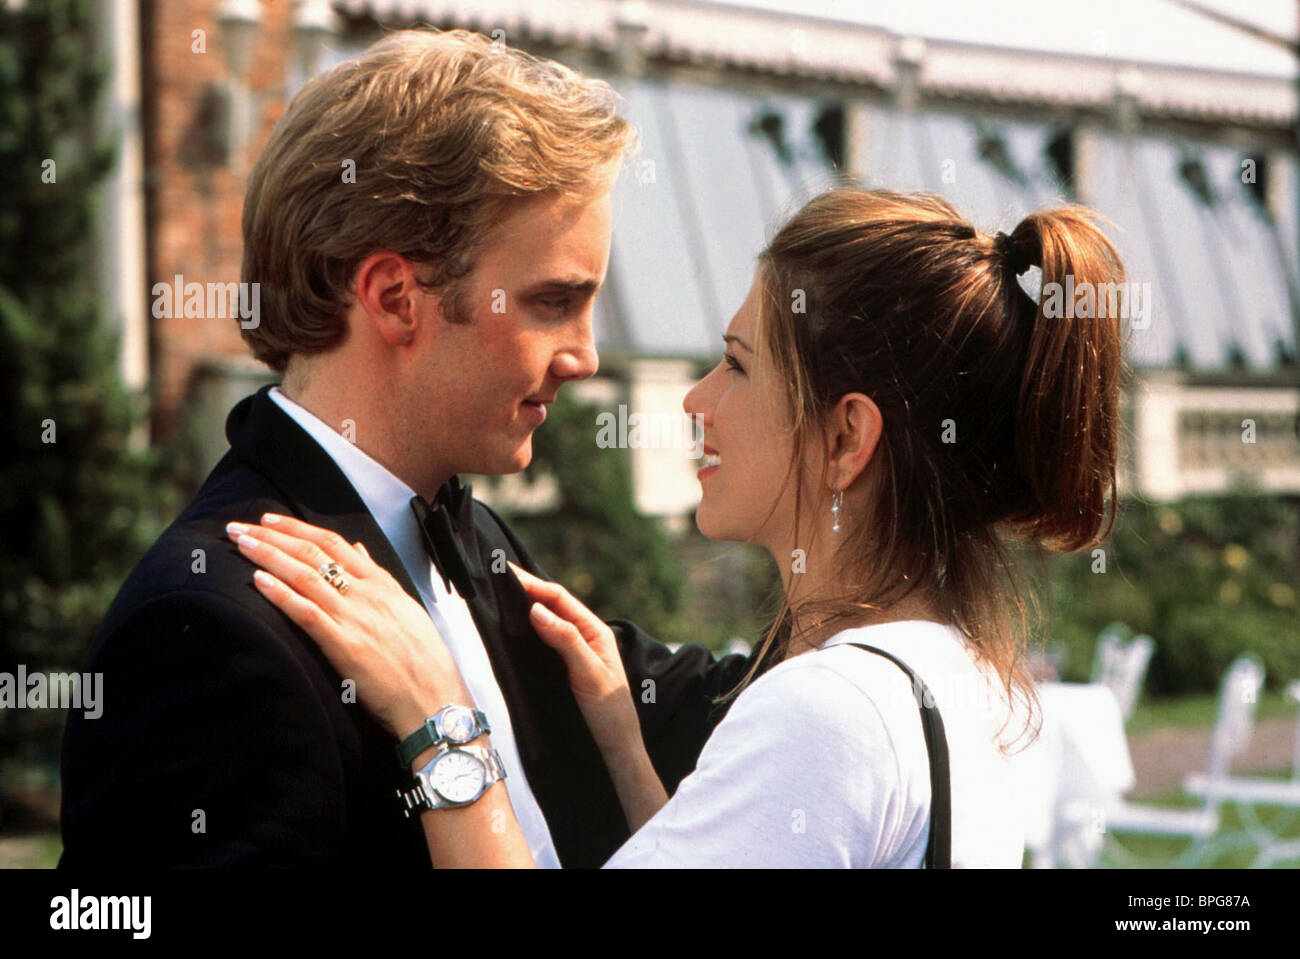 Picture Perfect: JAY MOHR & JENNIFER ANISTON PICTURE PERFECT (1997 Stock